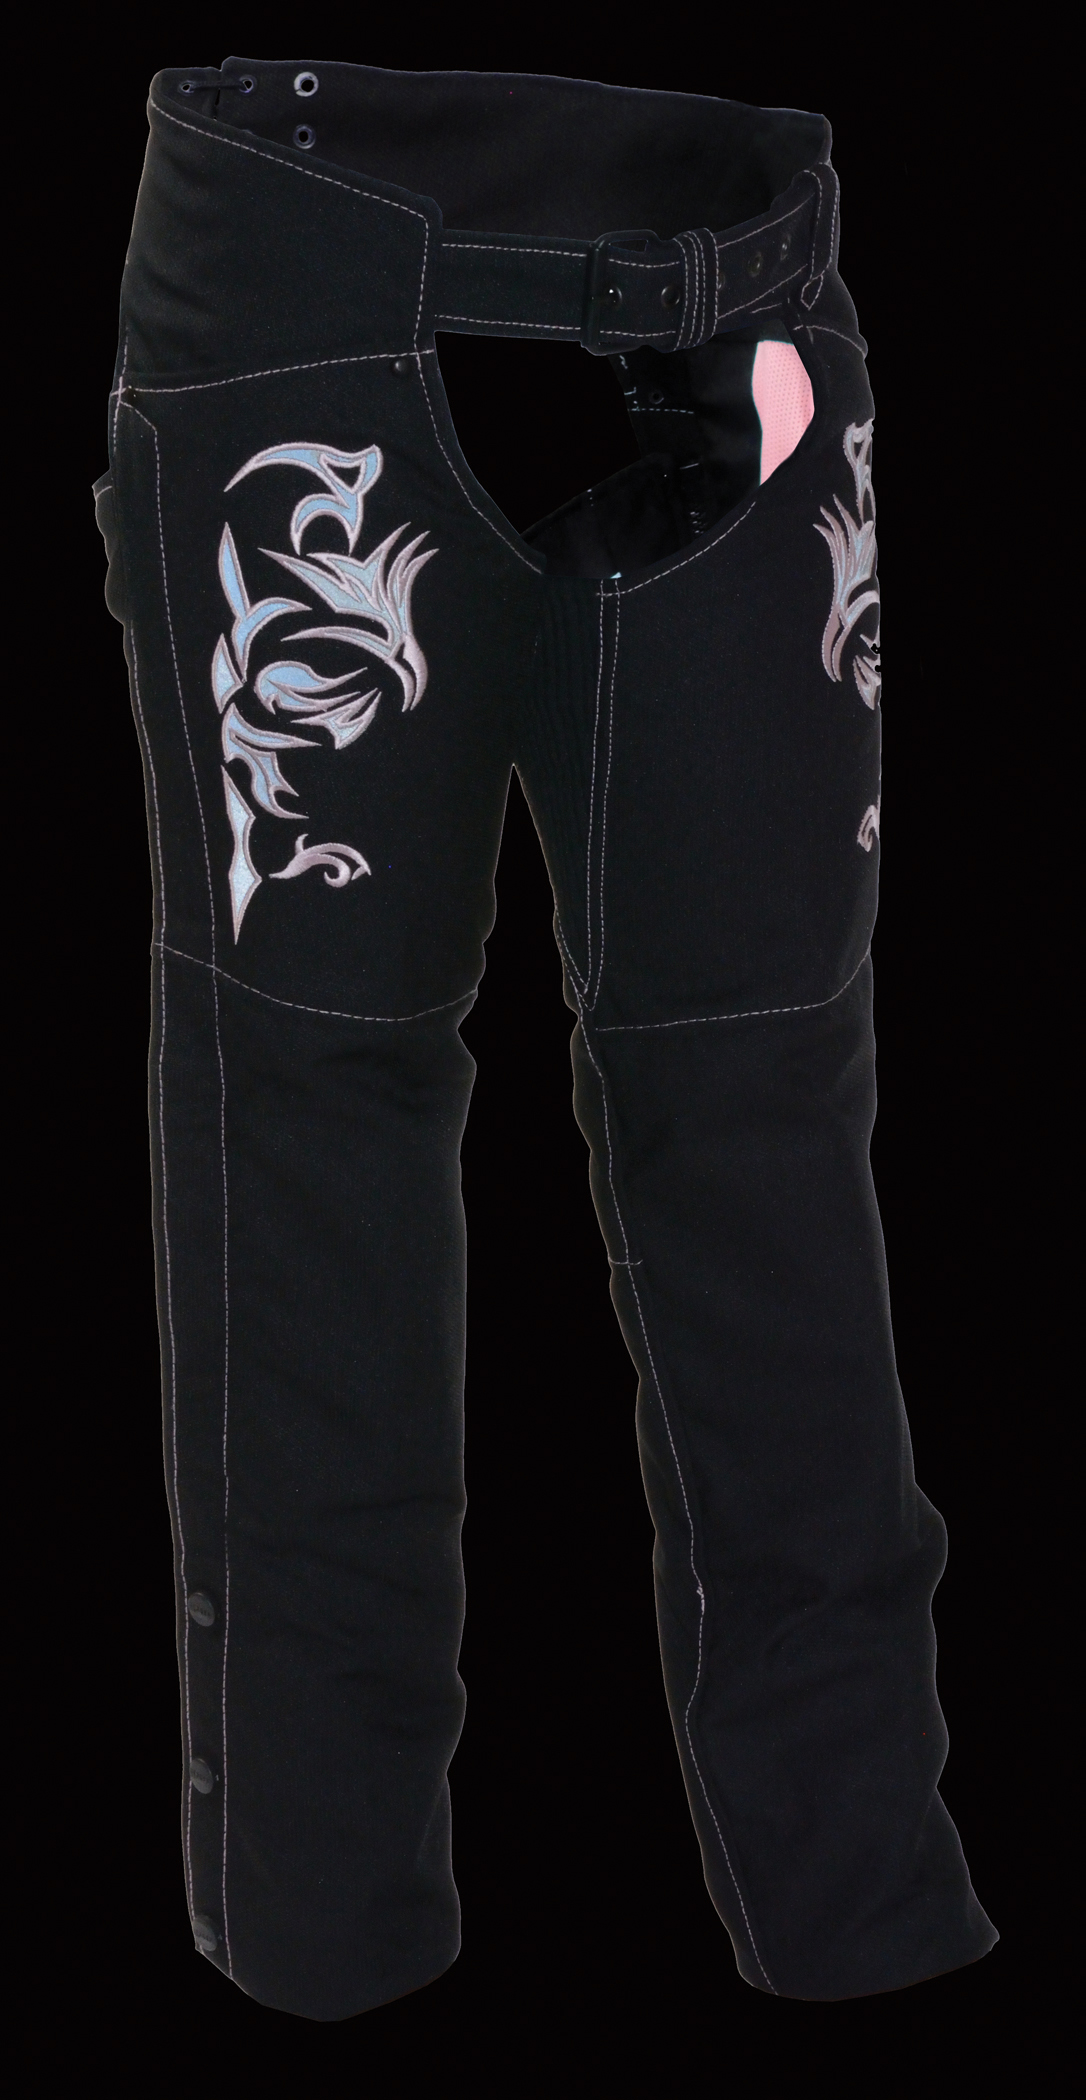 leather chaps for women sale